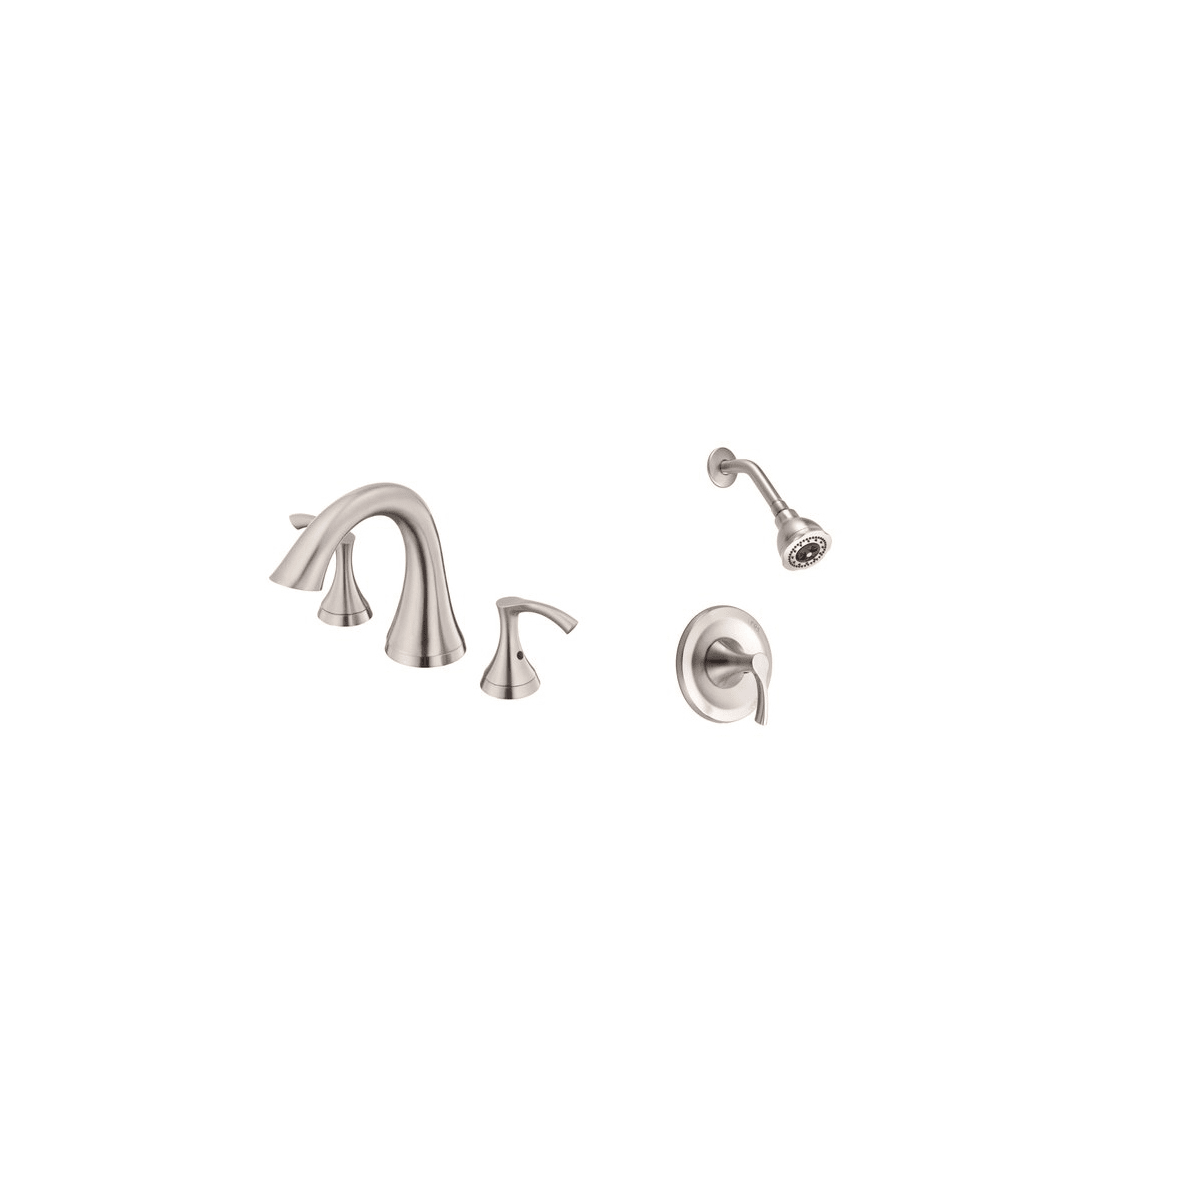 Danze Antioch Faucet and Shower Bundle 1 BN Brushed Nickel Roman Tub ...